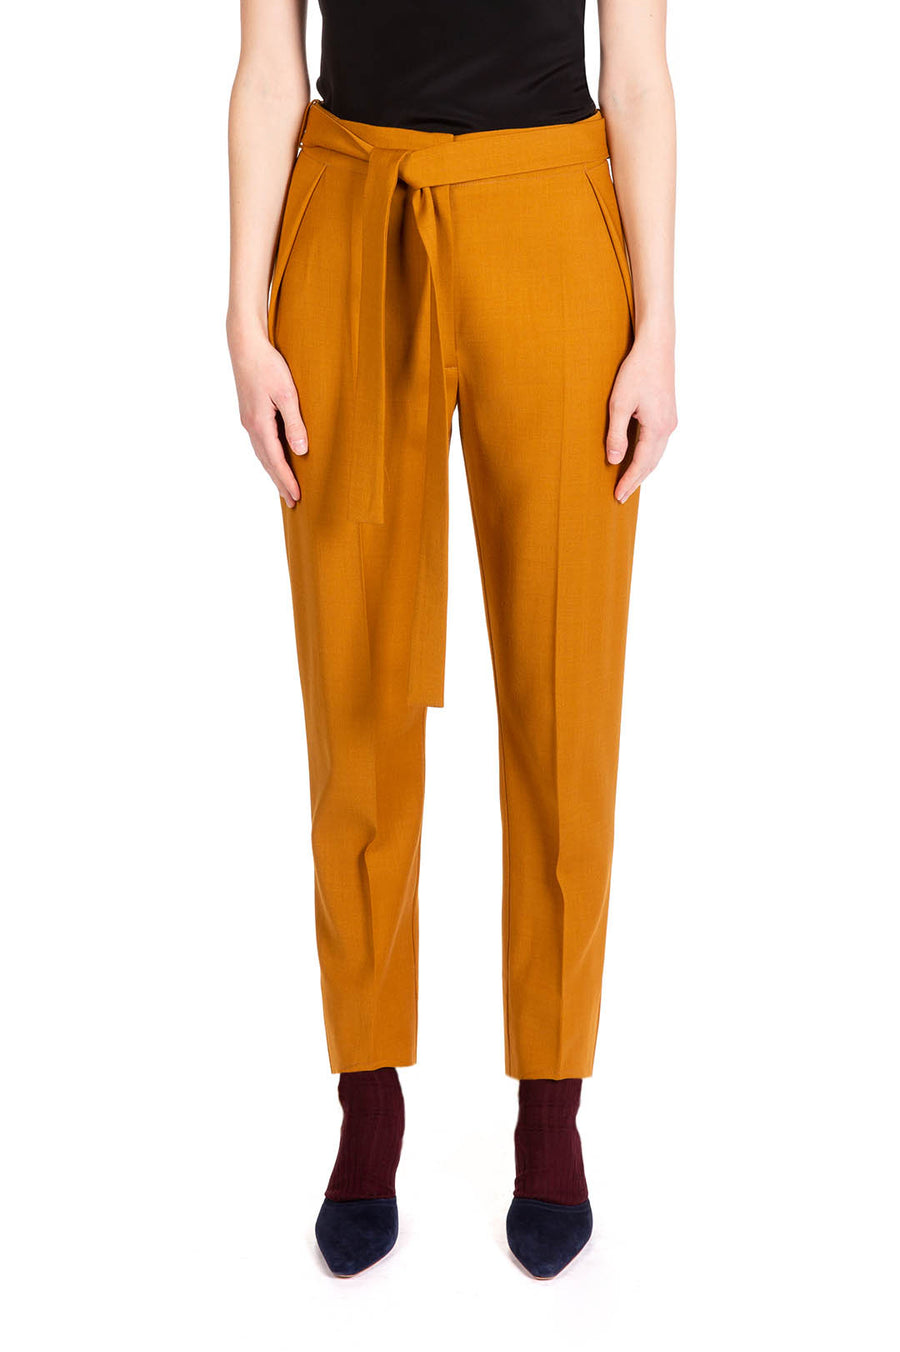 GOYA TROUSER Honey